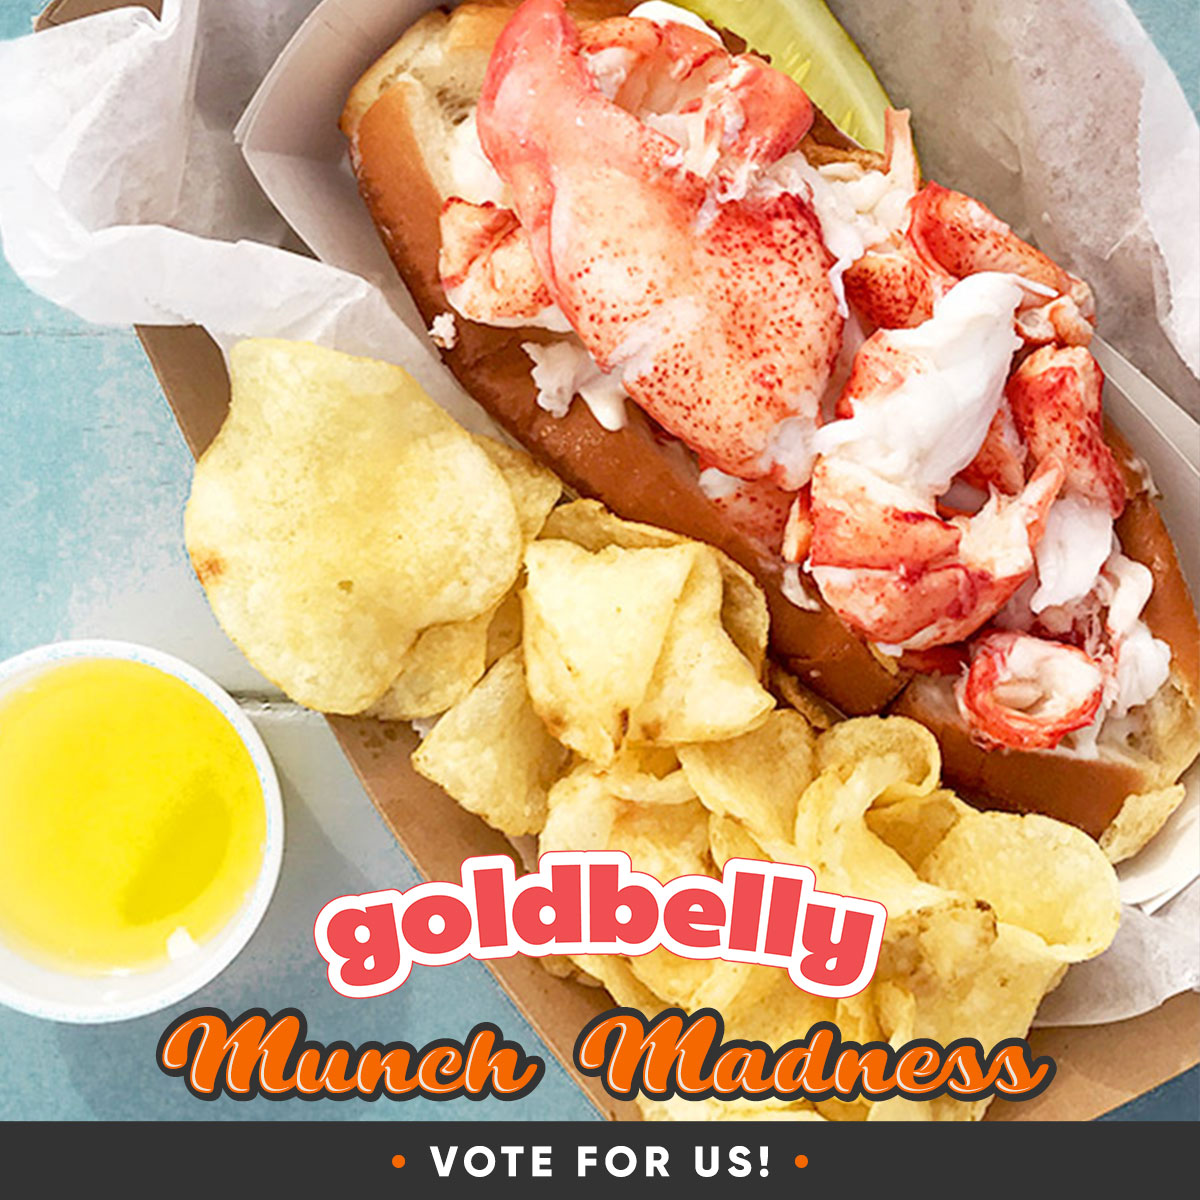 Goldbelly-Munch-Madness-Social-1200-Square-Vote-V2-2.jpg